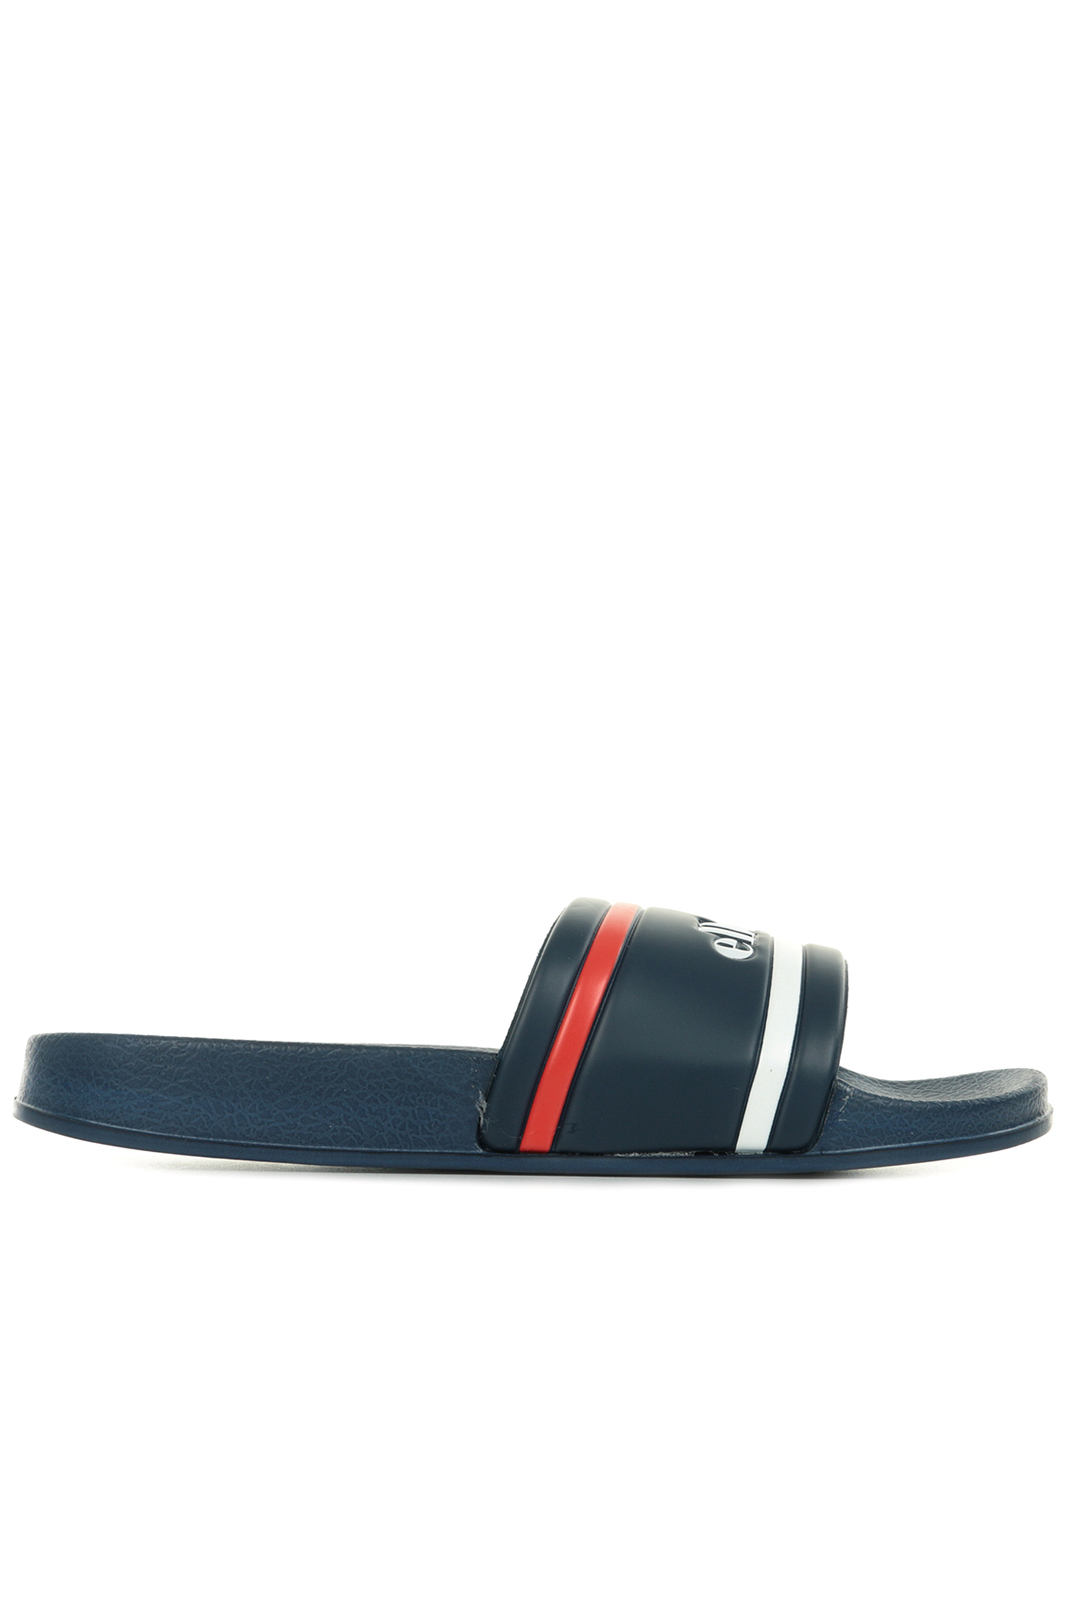 Tongs / Mules  Ellesse LION W W NAVY RED